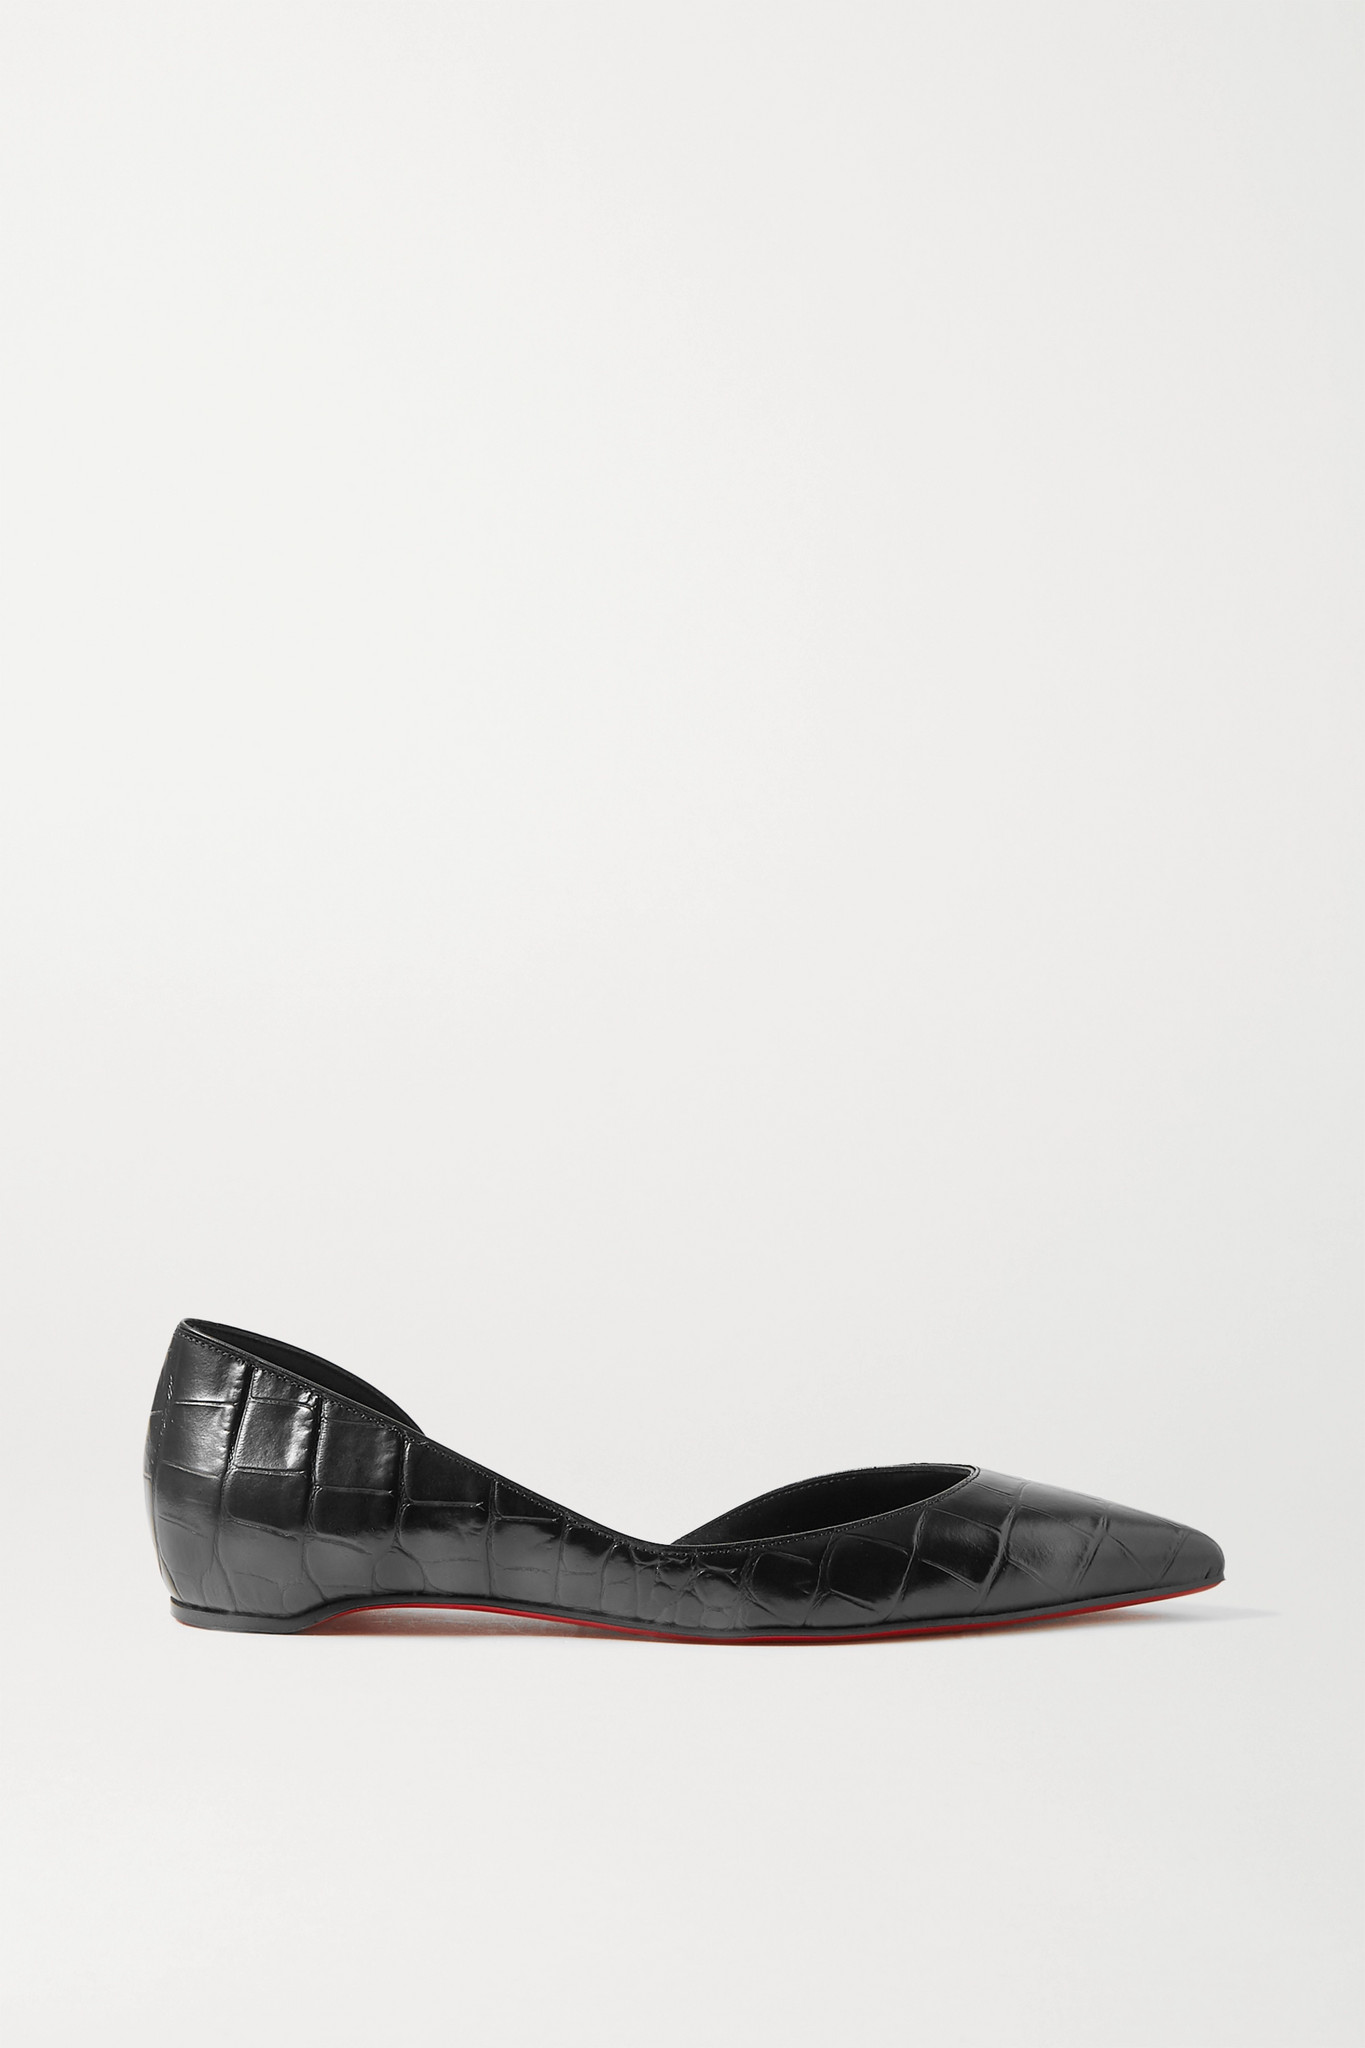 CHRISTIAN LOUBOUTIN - Iriza Croc-effect Leather Point-toe Flats - Black - IT36.5